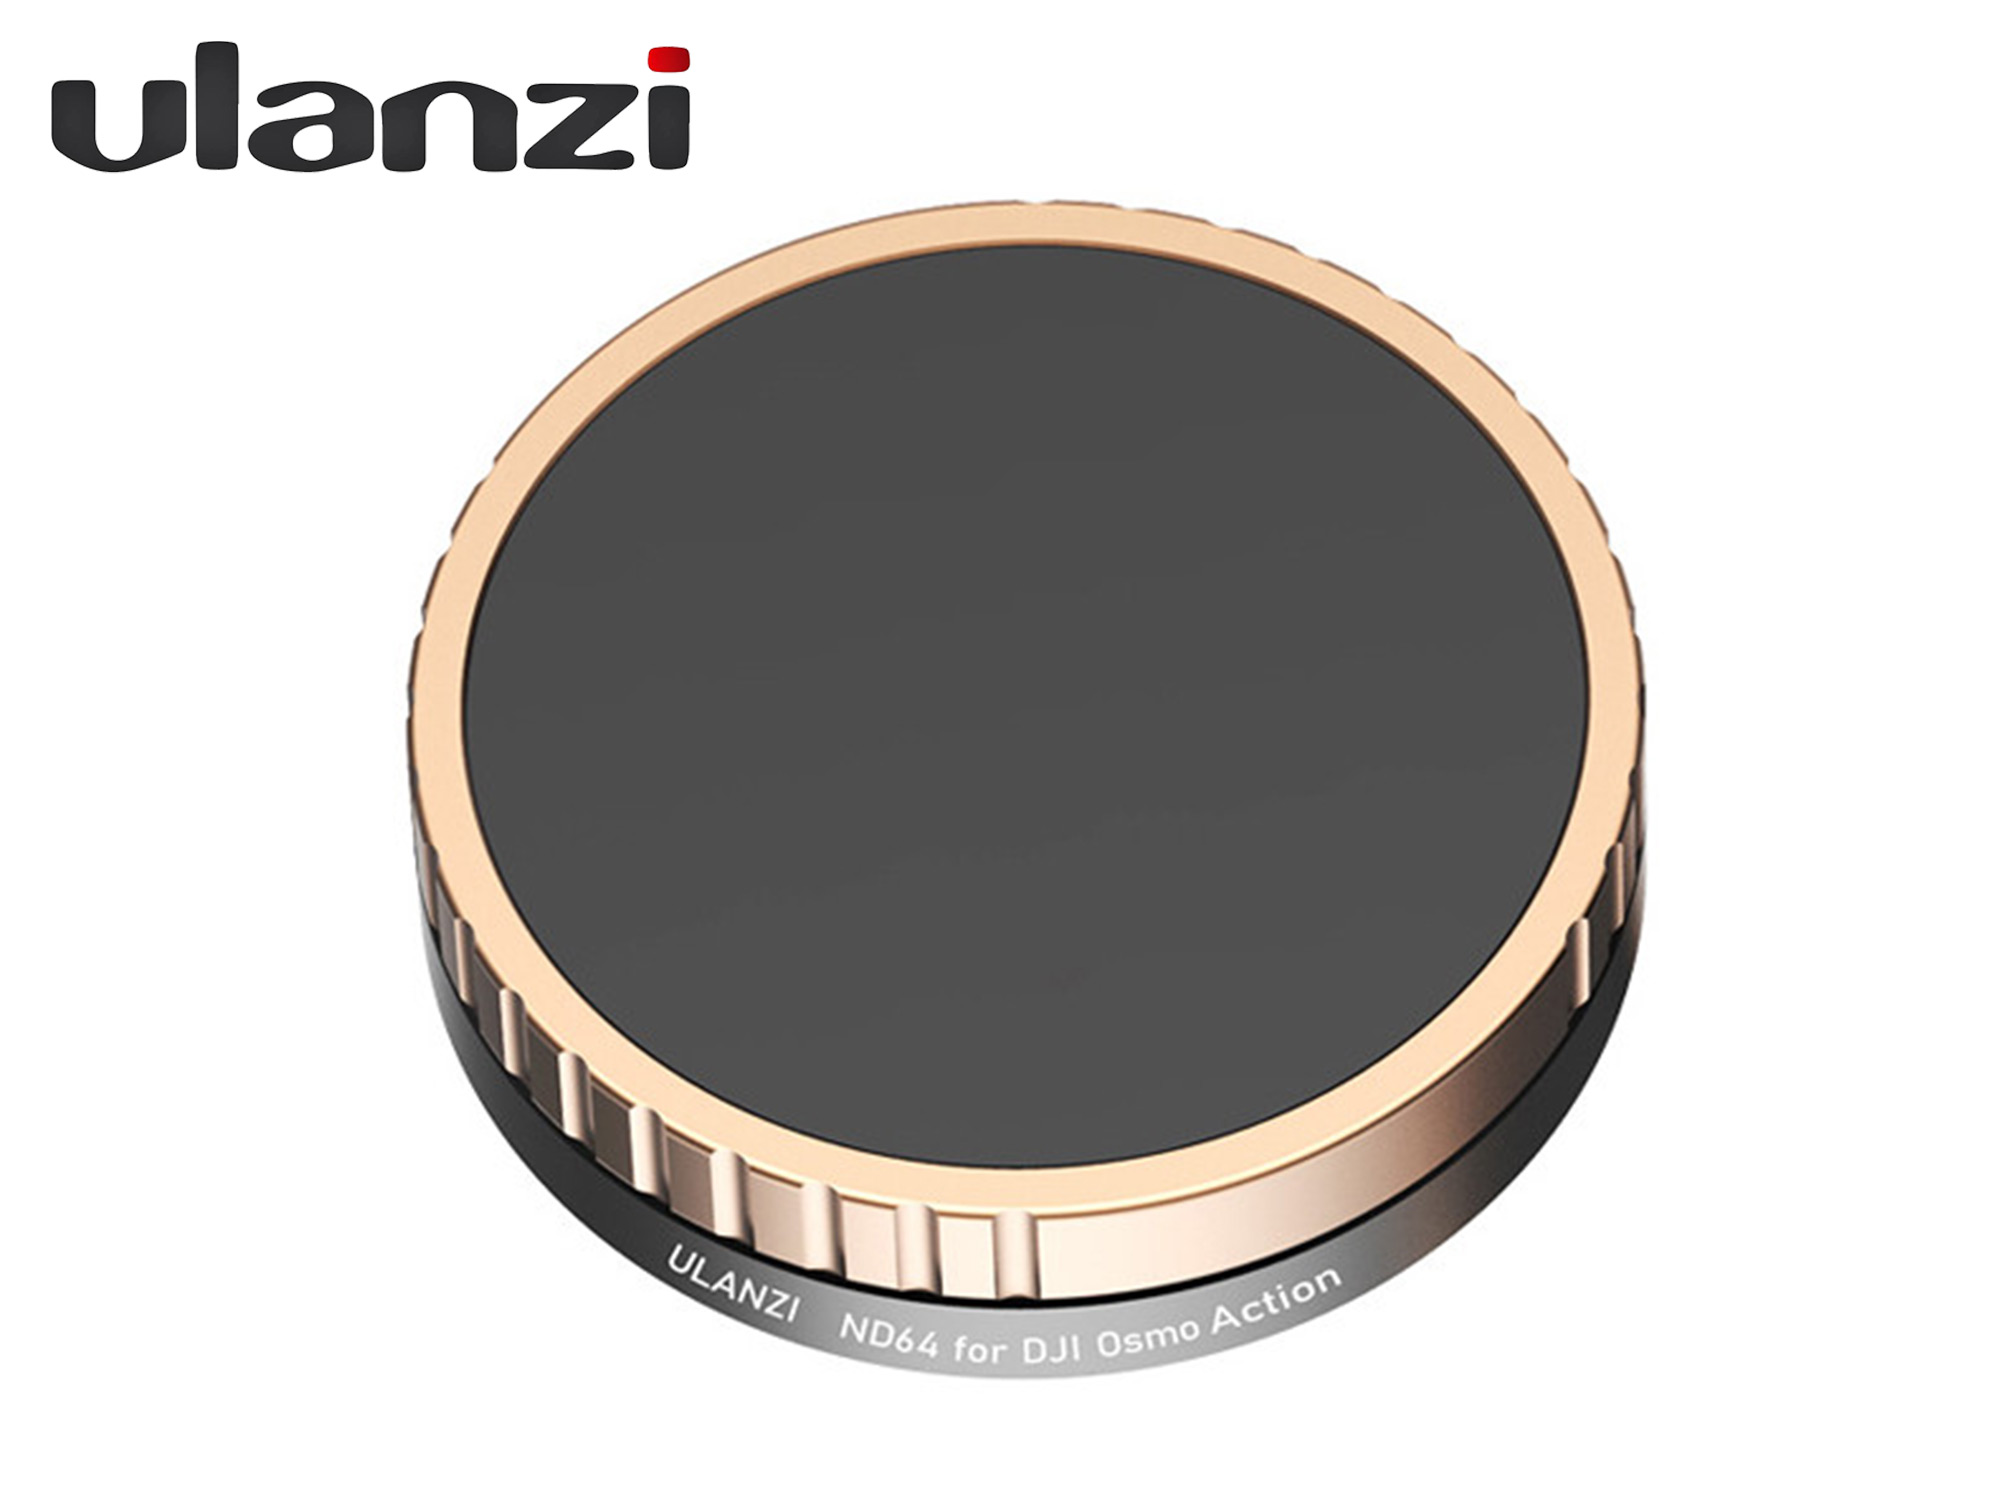 Ulanzi ND Filter for Osmo Action - ND64